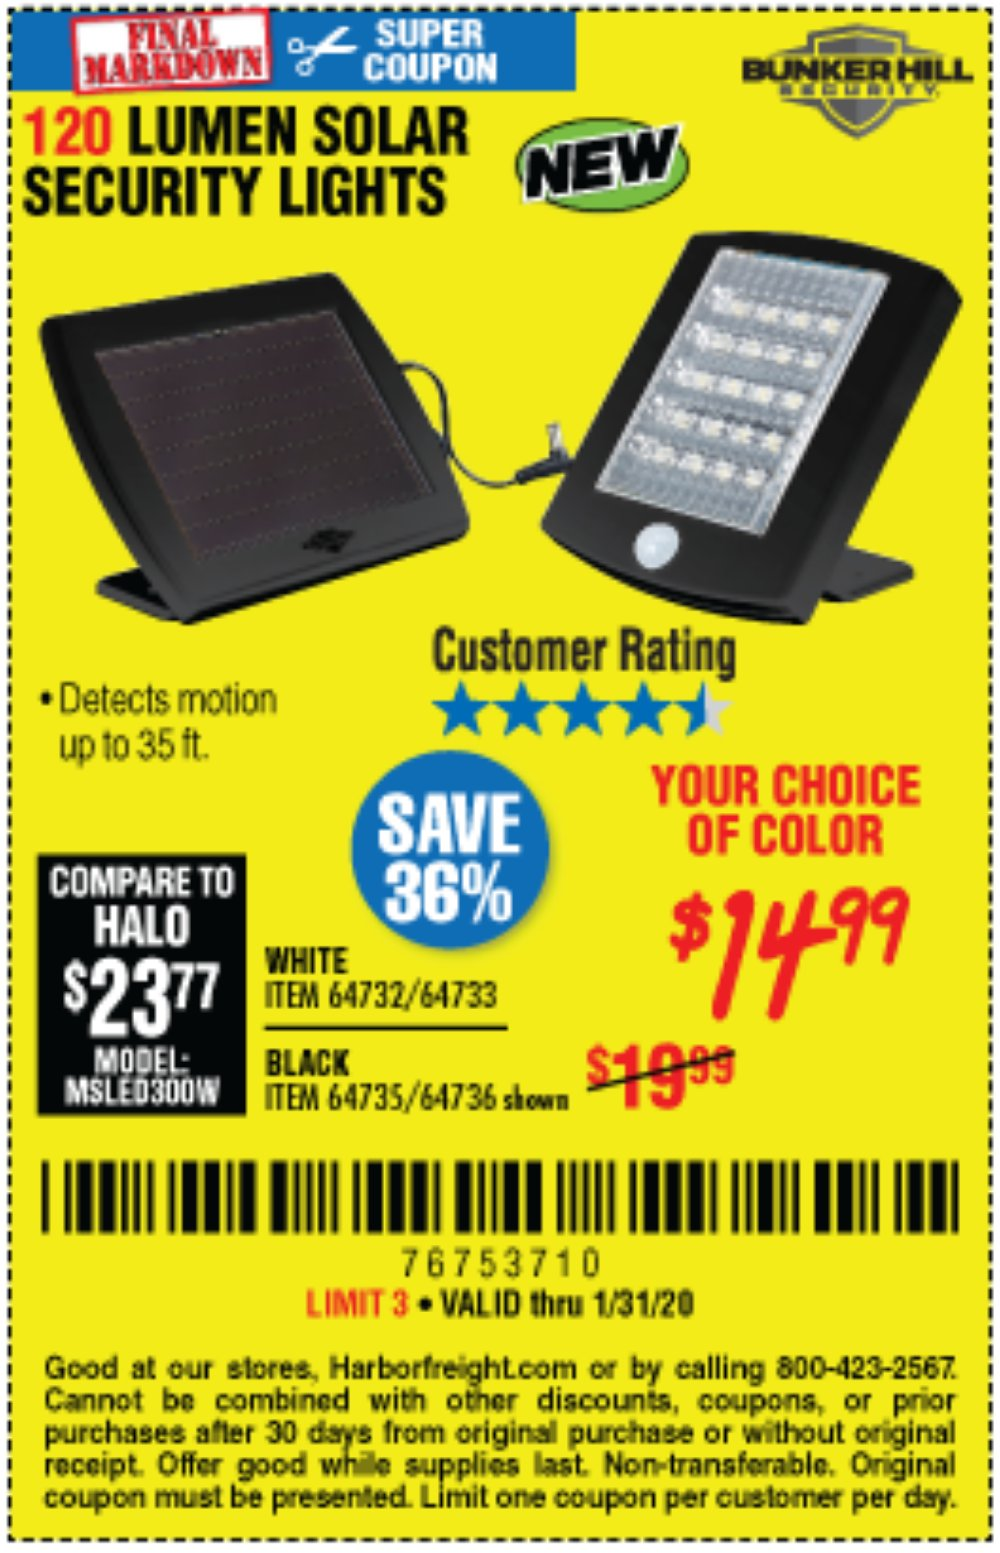 Harbor Freight Coupon, HF Coupons - 120 Lumen Solar Motion Security Lights